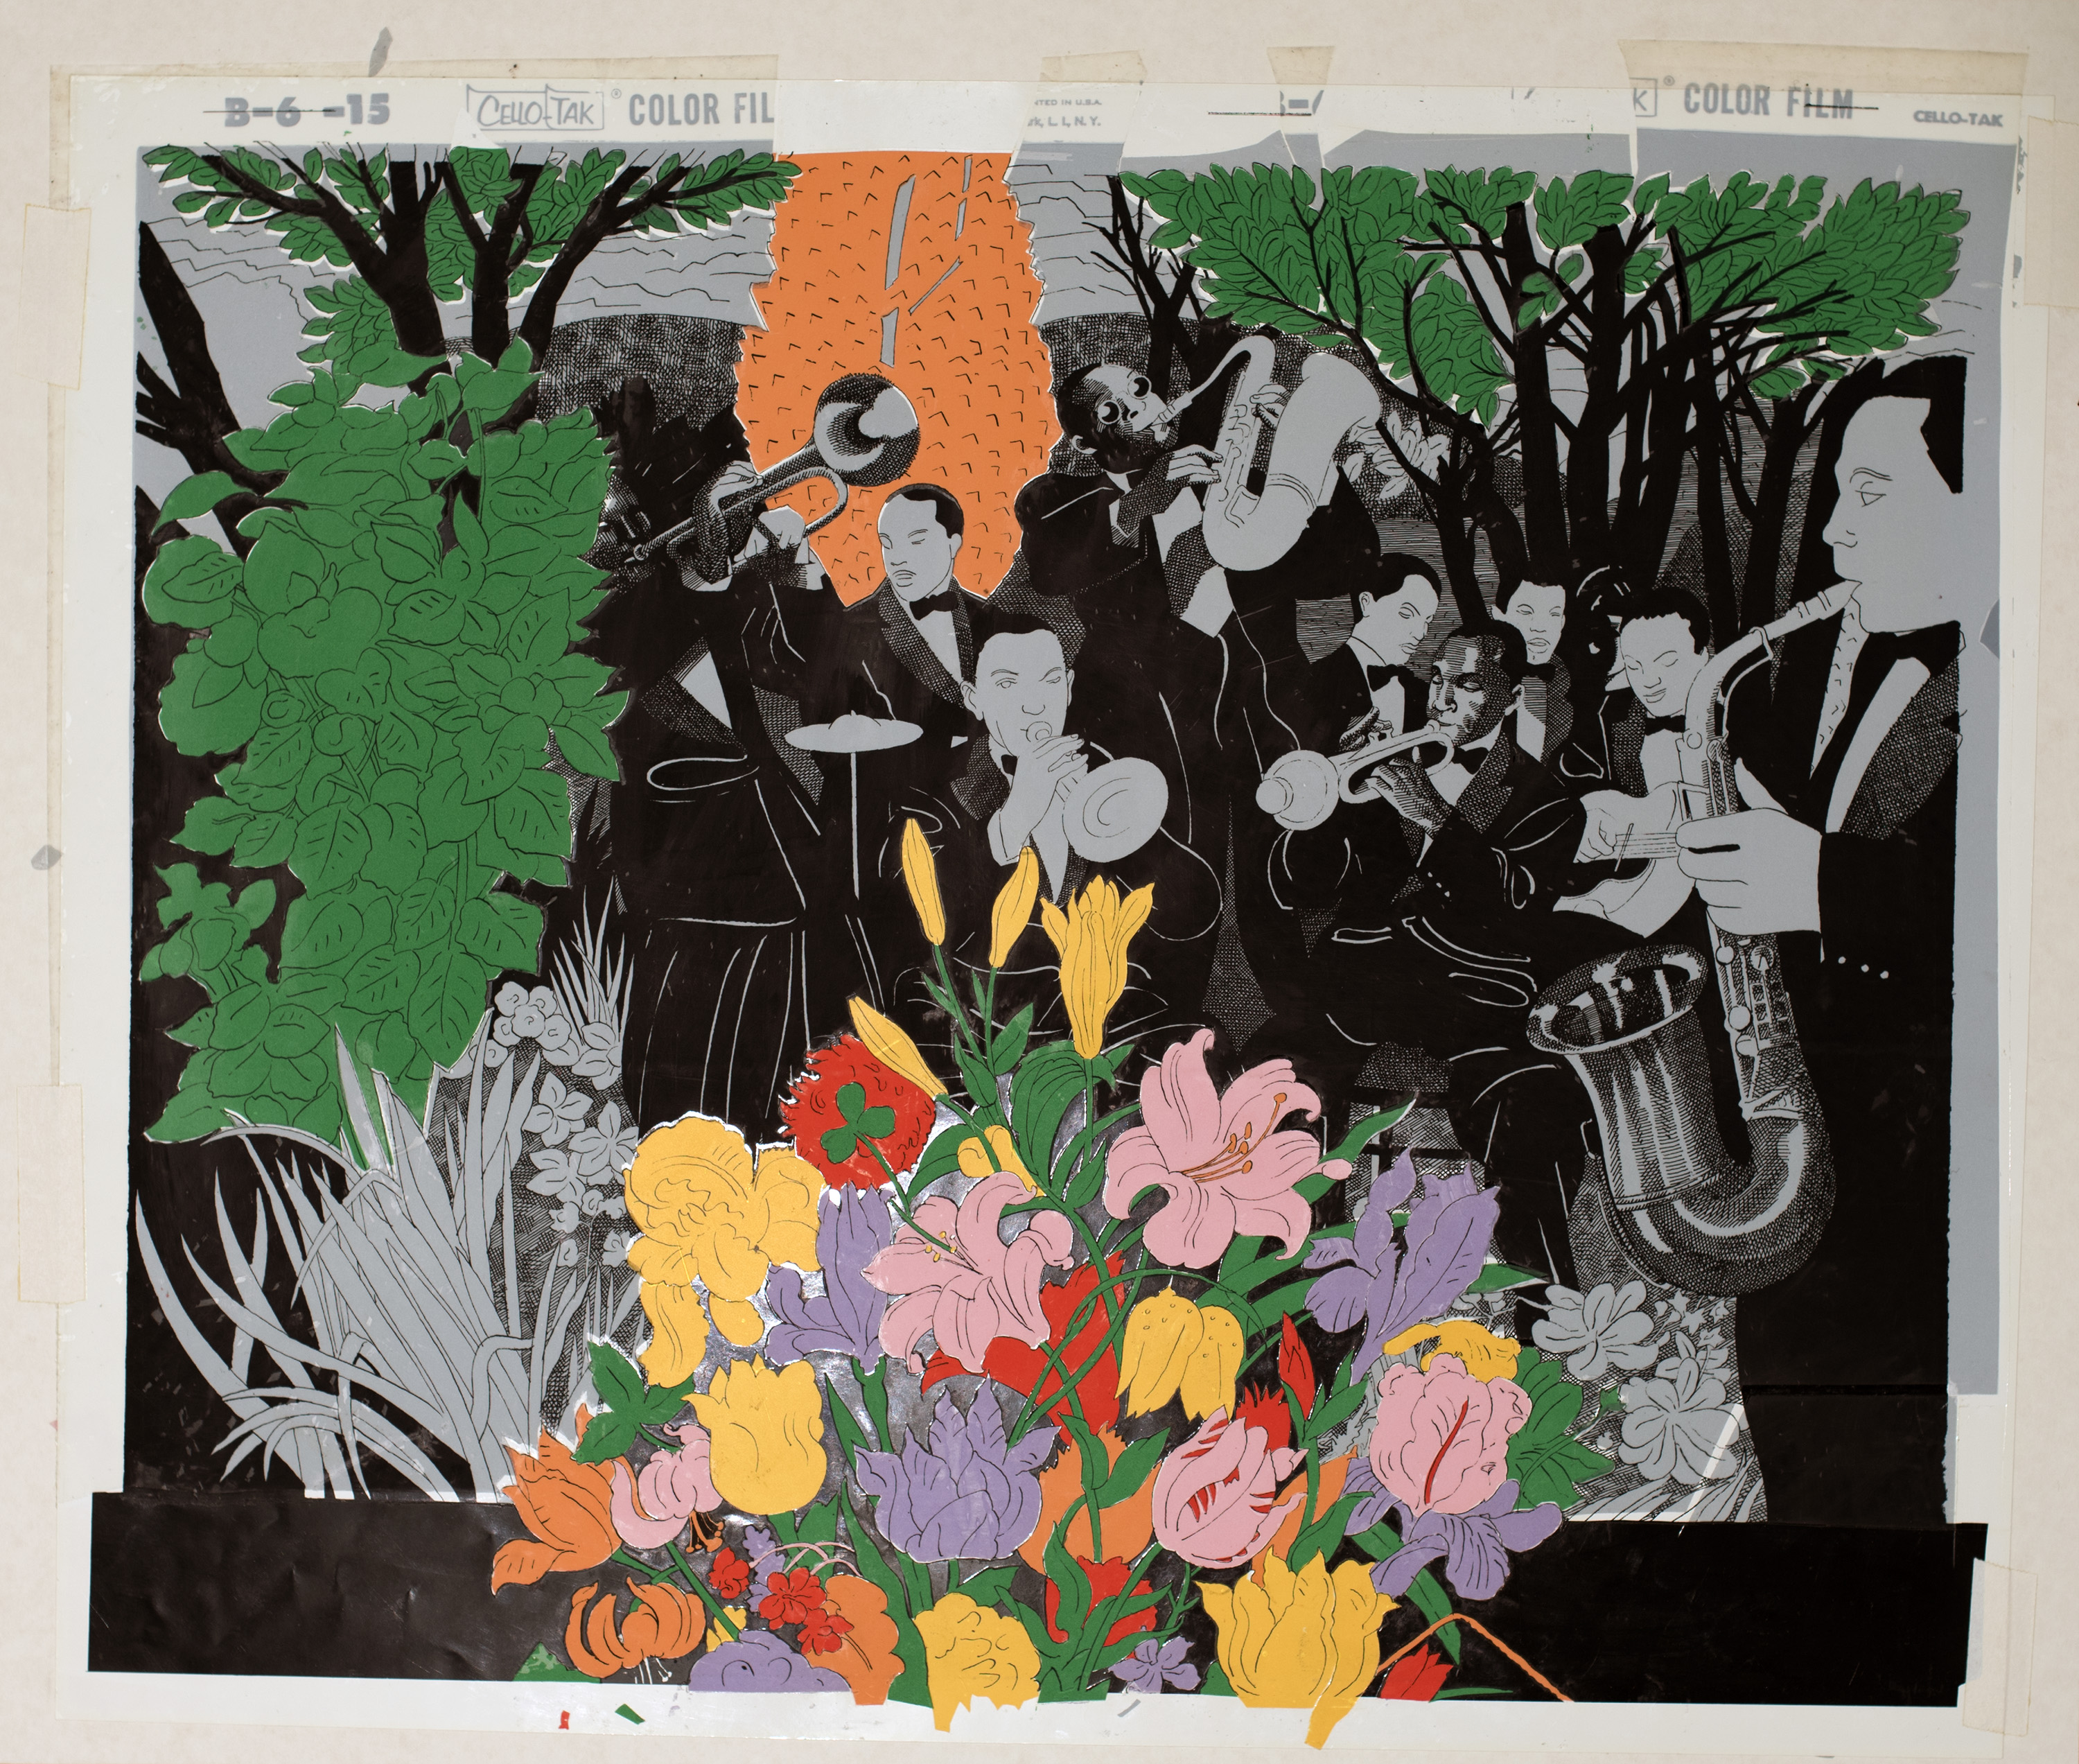 Black and white drawing of a jazz band playing, surrounded by colorful foliage.